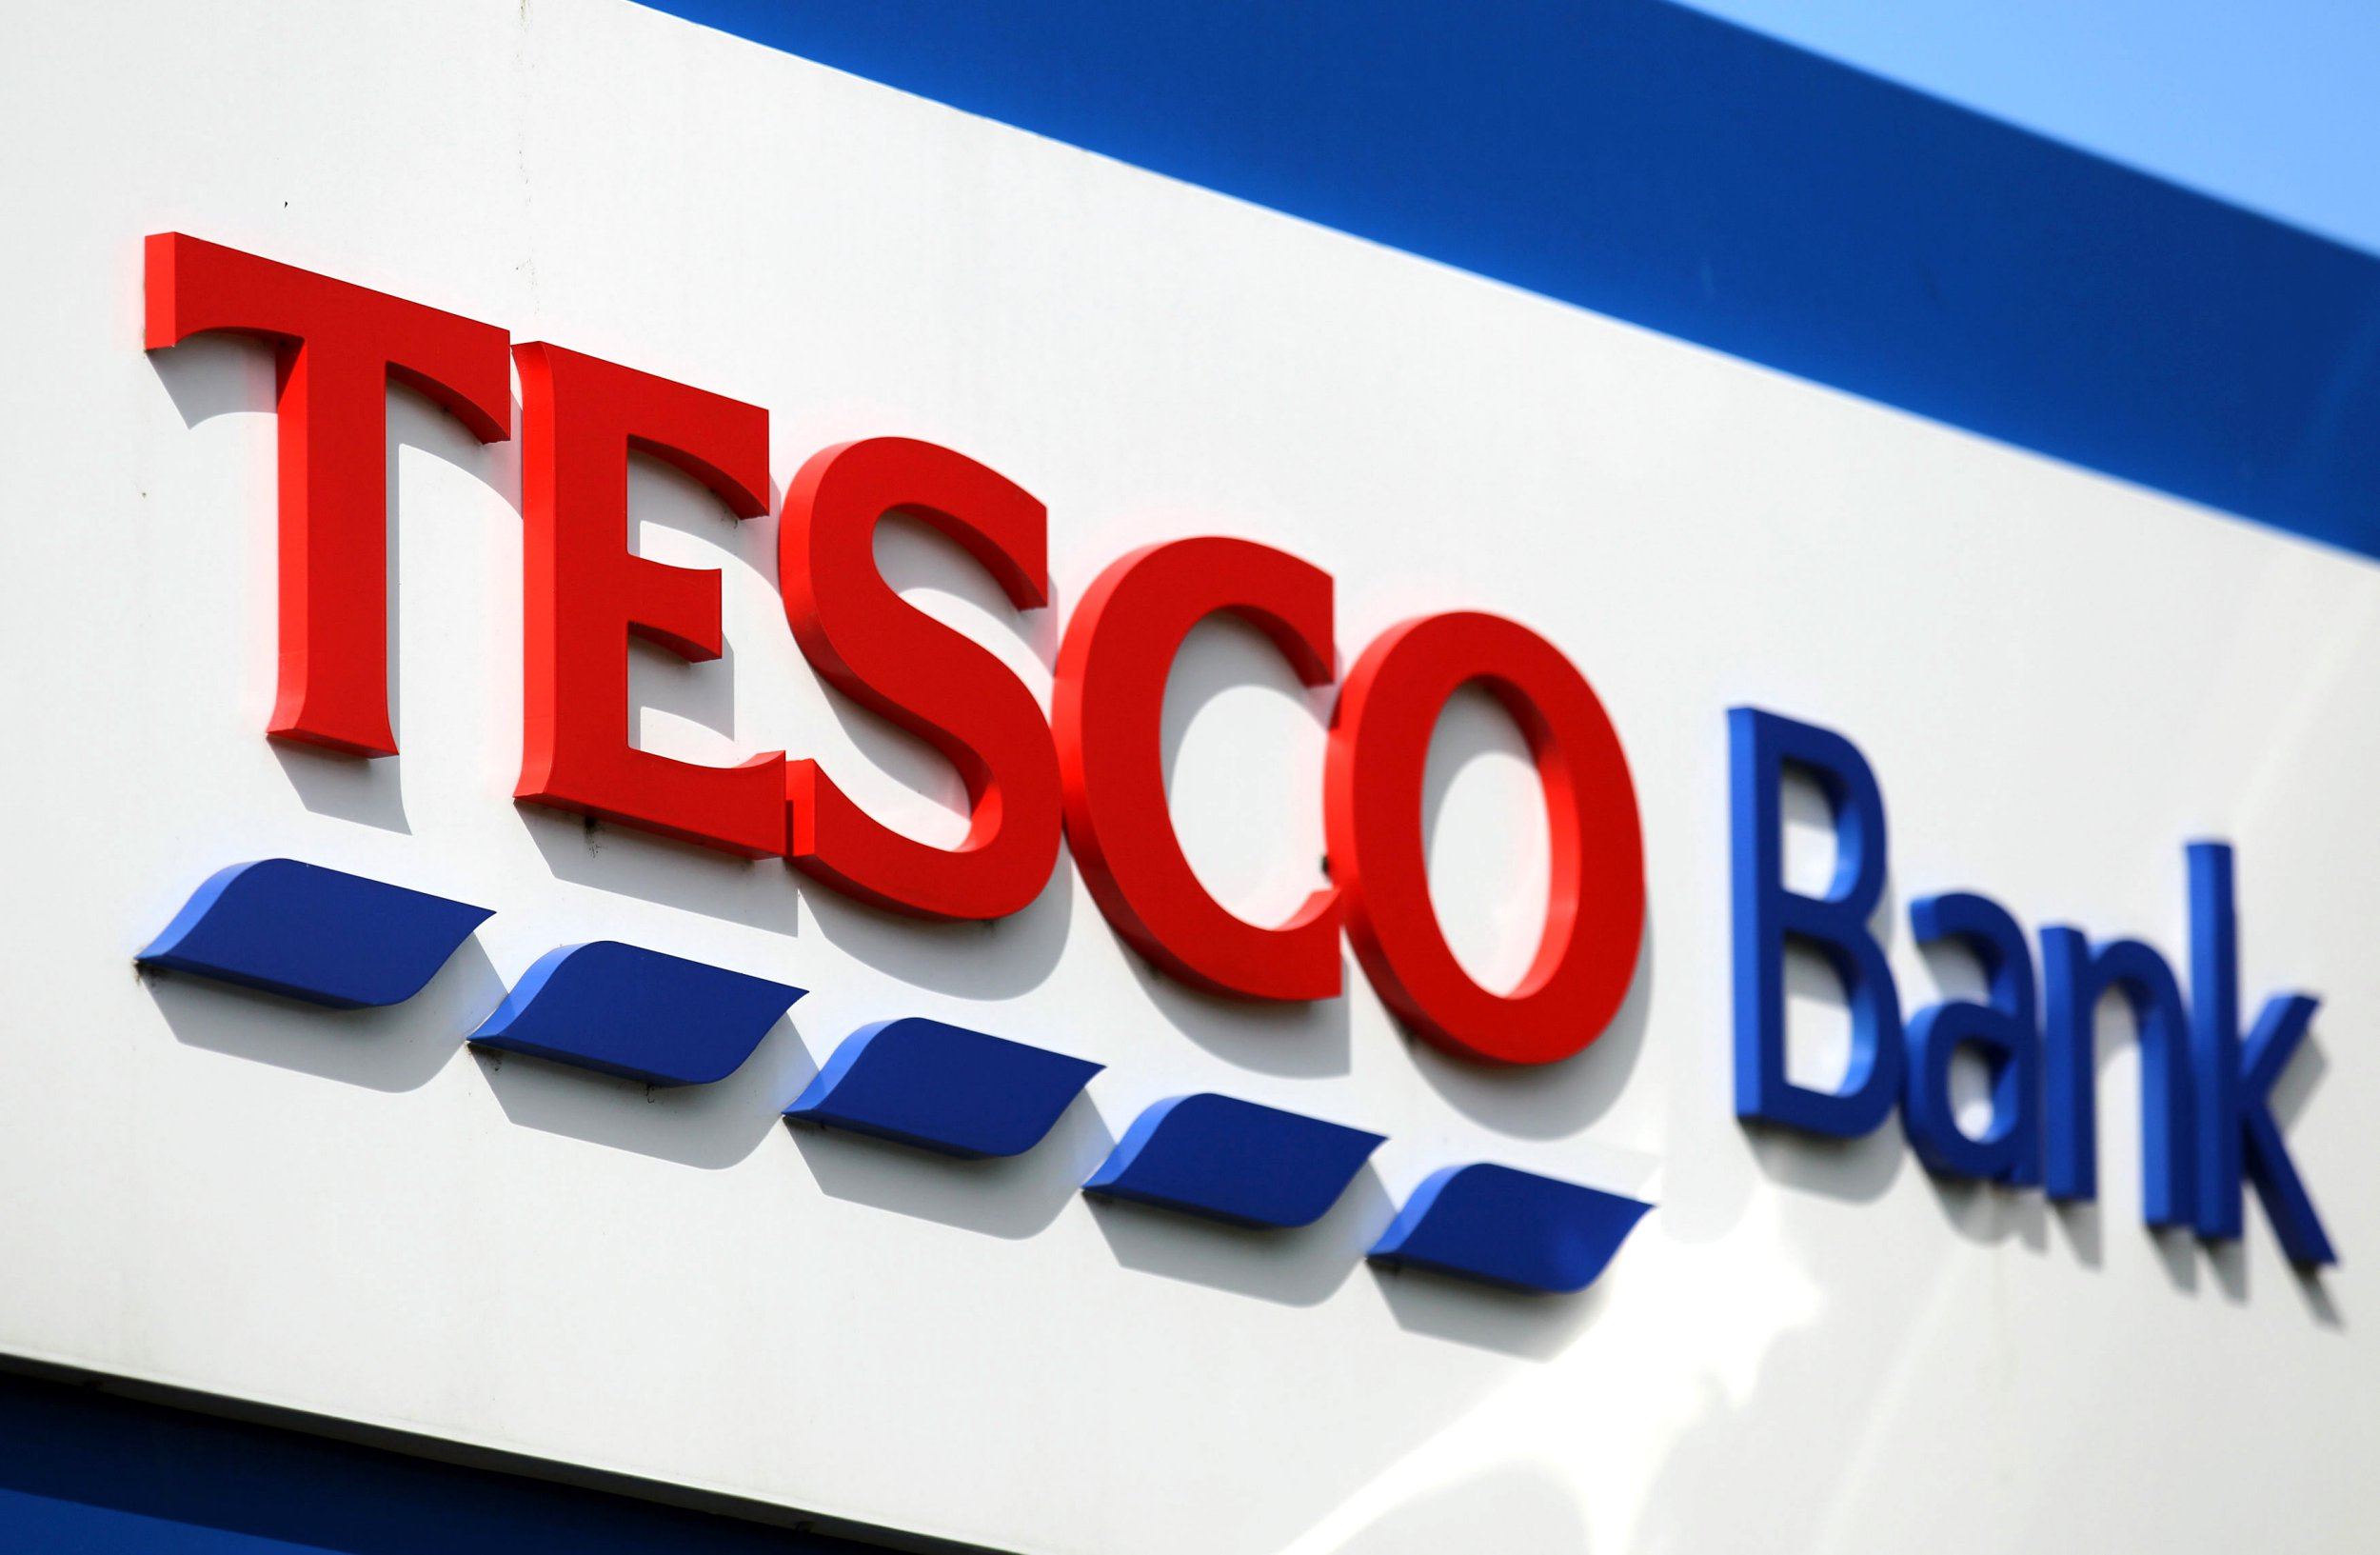 File photo dated 10/06/14 of a Tesco Bank sign, as the company has agreed to pay ?16.4 million as part of a settlement with the Financial Conduct Authority following a cyber attack in 2016. PRESS ASSOCIATION Photo. Issue date: Monday October 1, 2018. See PA story CITY Tesco. Photo credit should read: Andrew Milligan/PA Wire